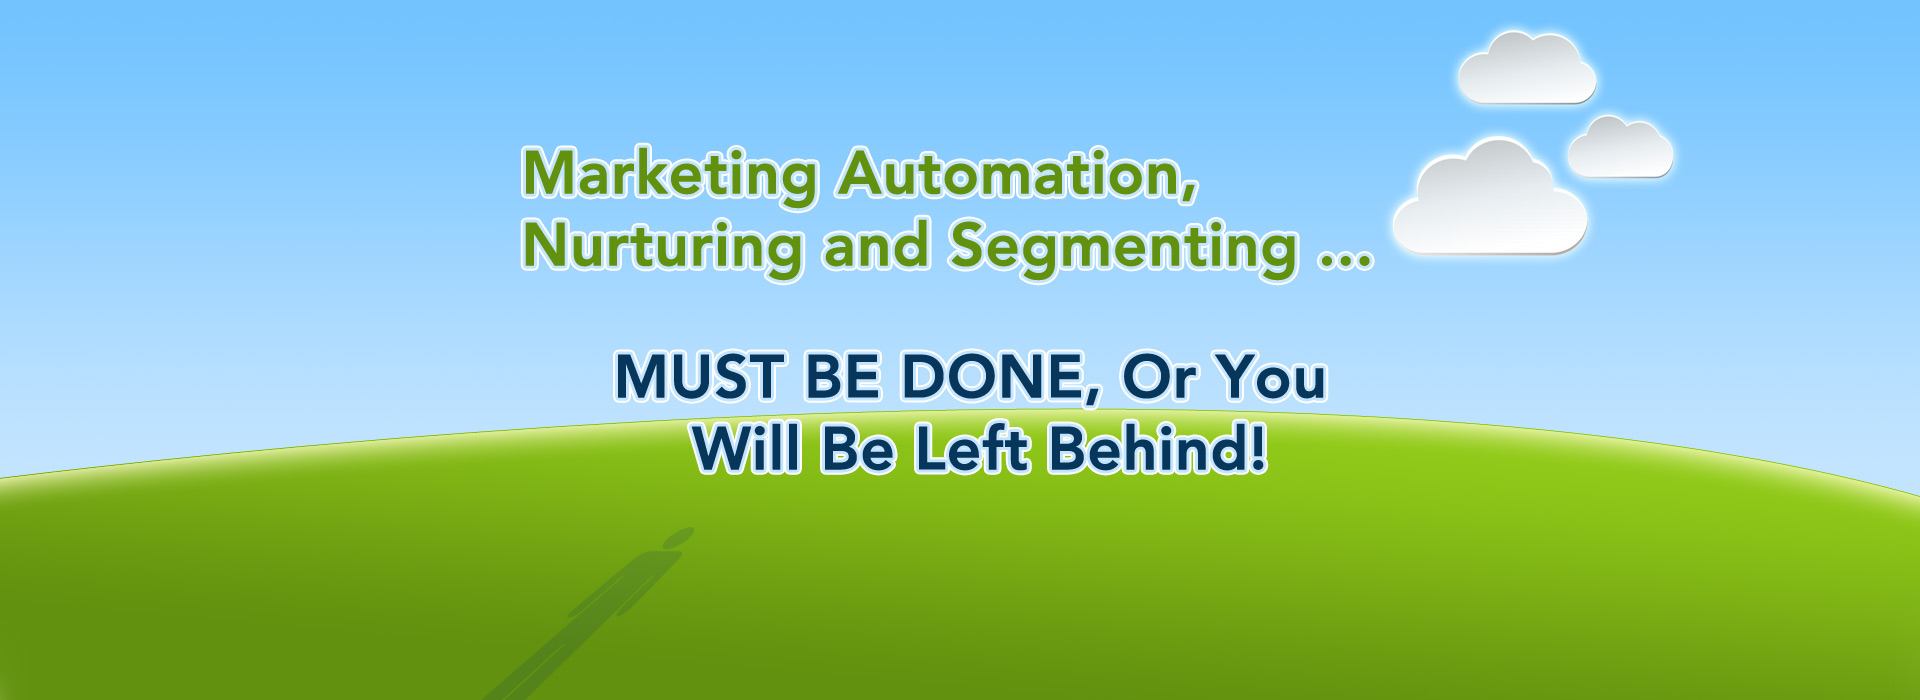 slide-6-marketing-automation